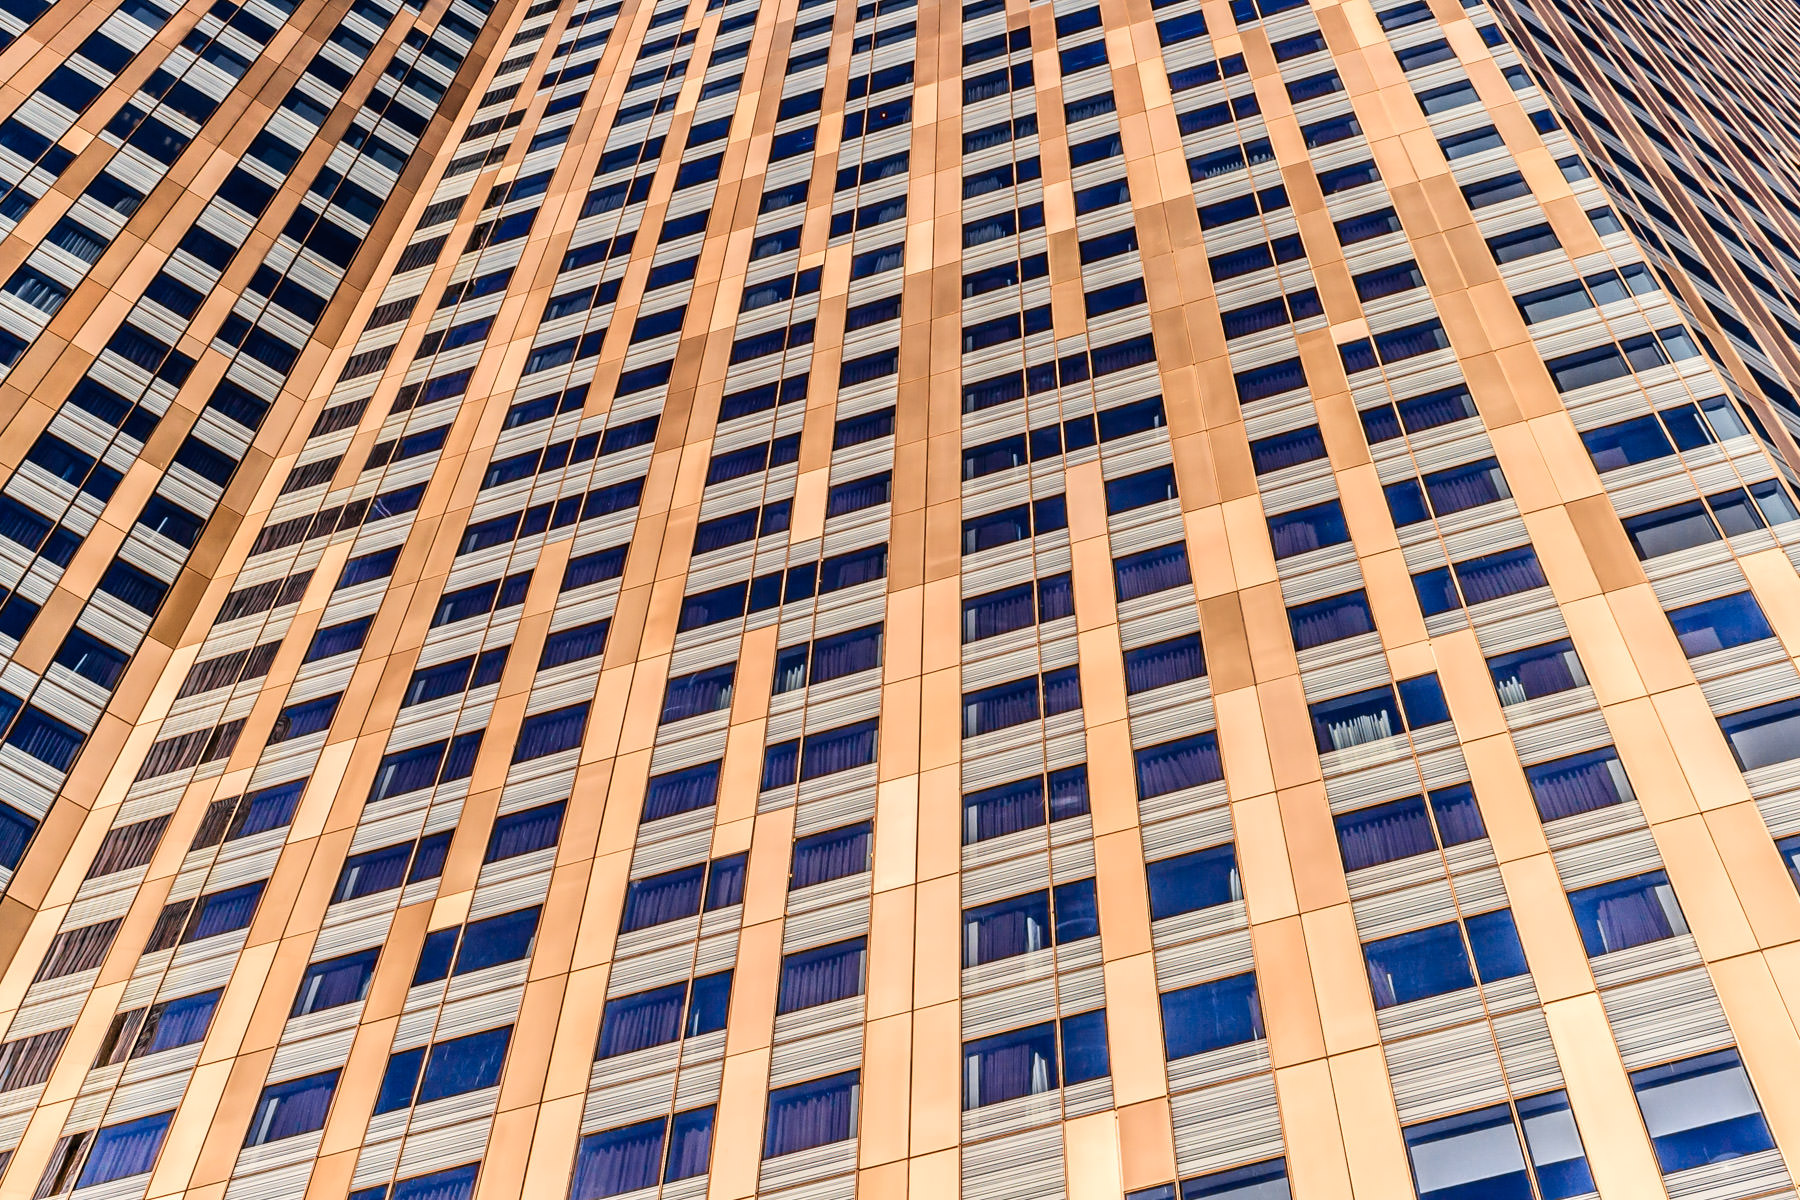 An abstracted study of the exterior of the Mandarin Oriental Hotel, CityCenter, Las Vegas.